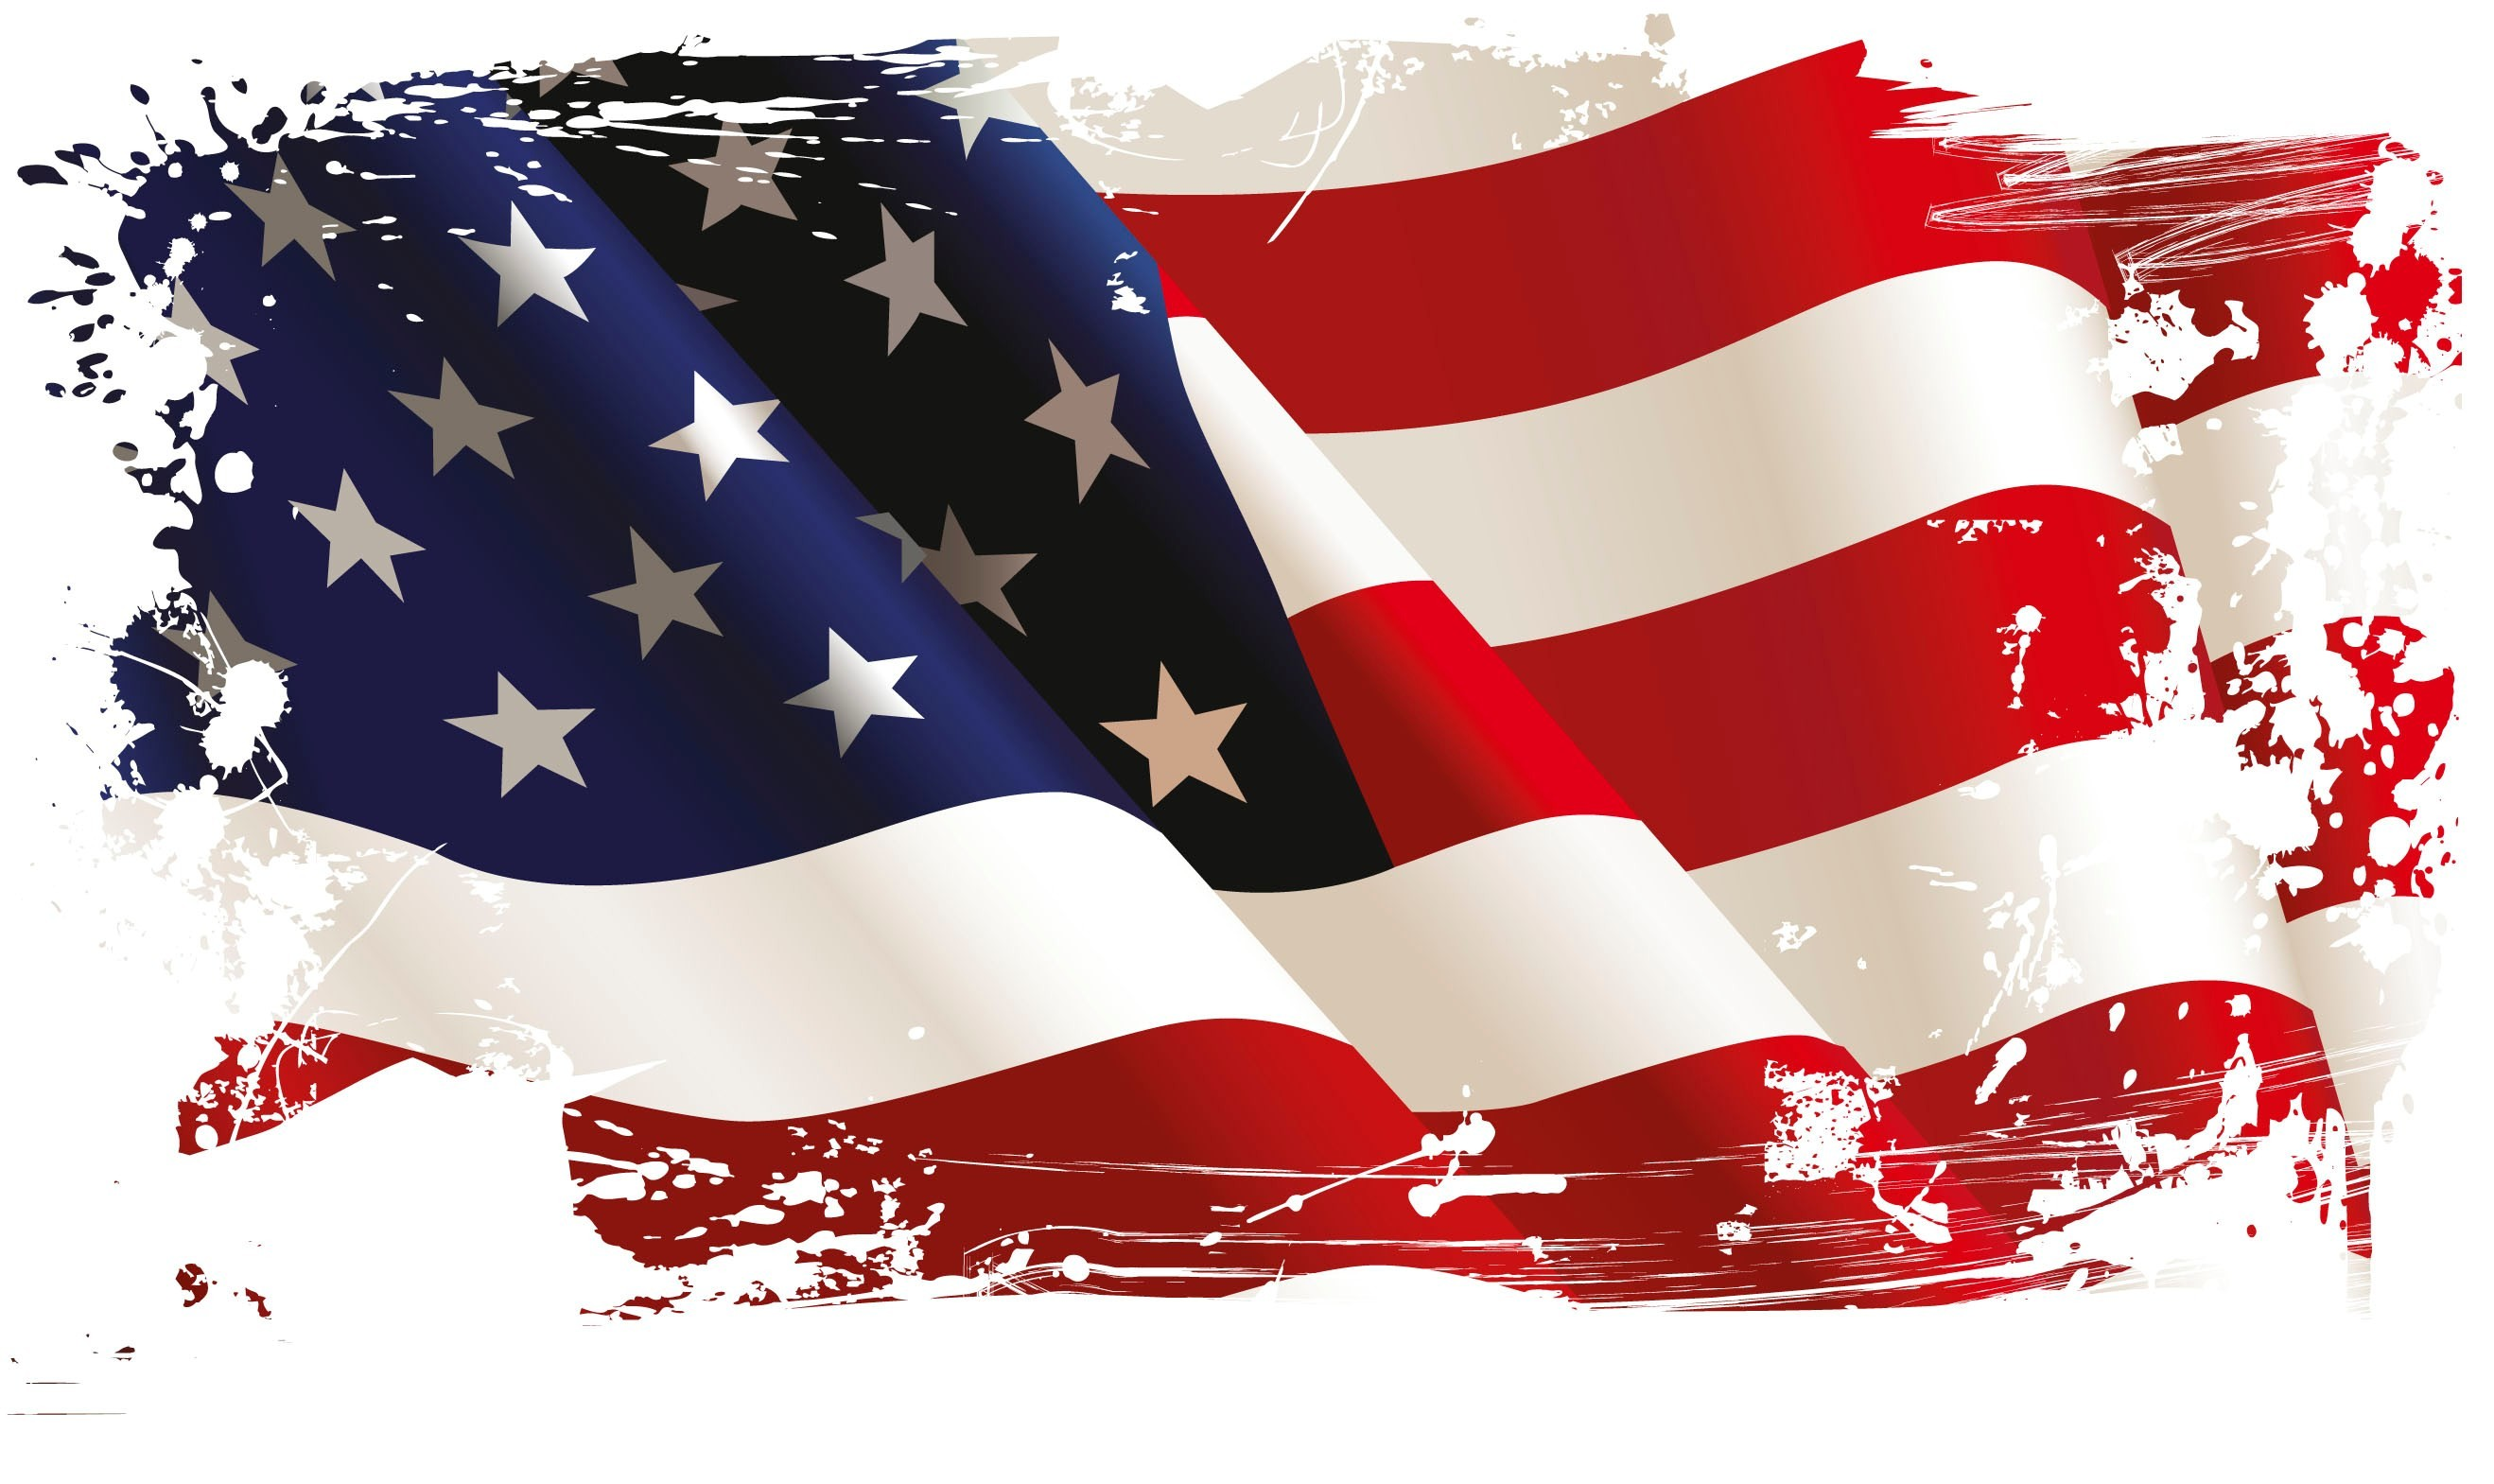 2637x1569 widescreen backgrounds american flag